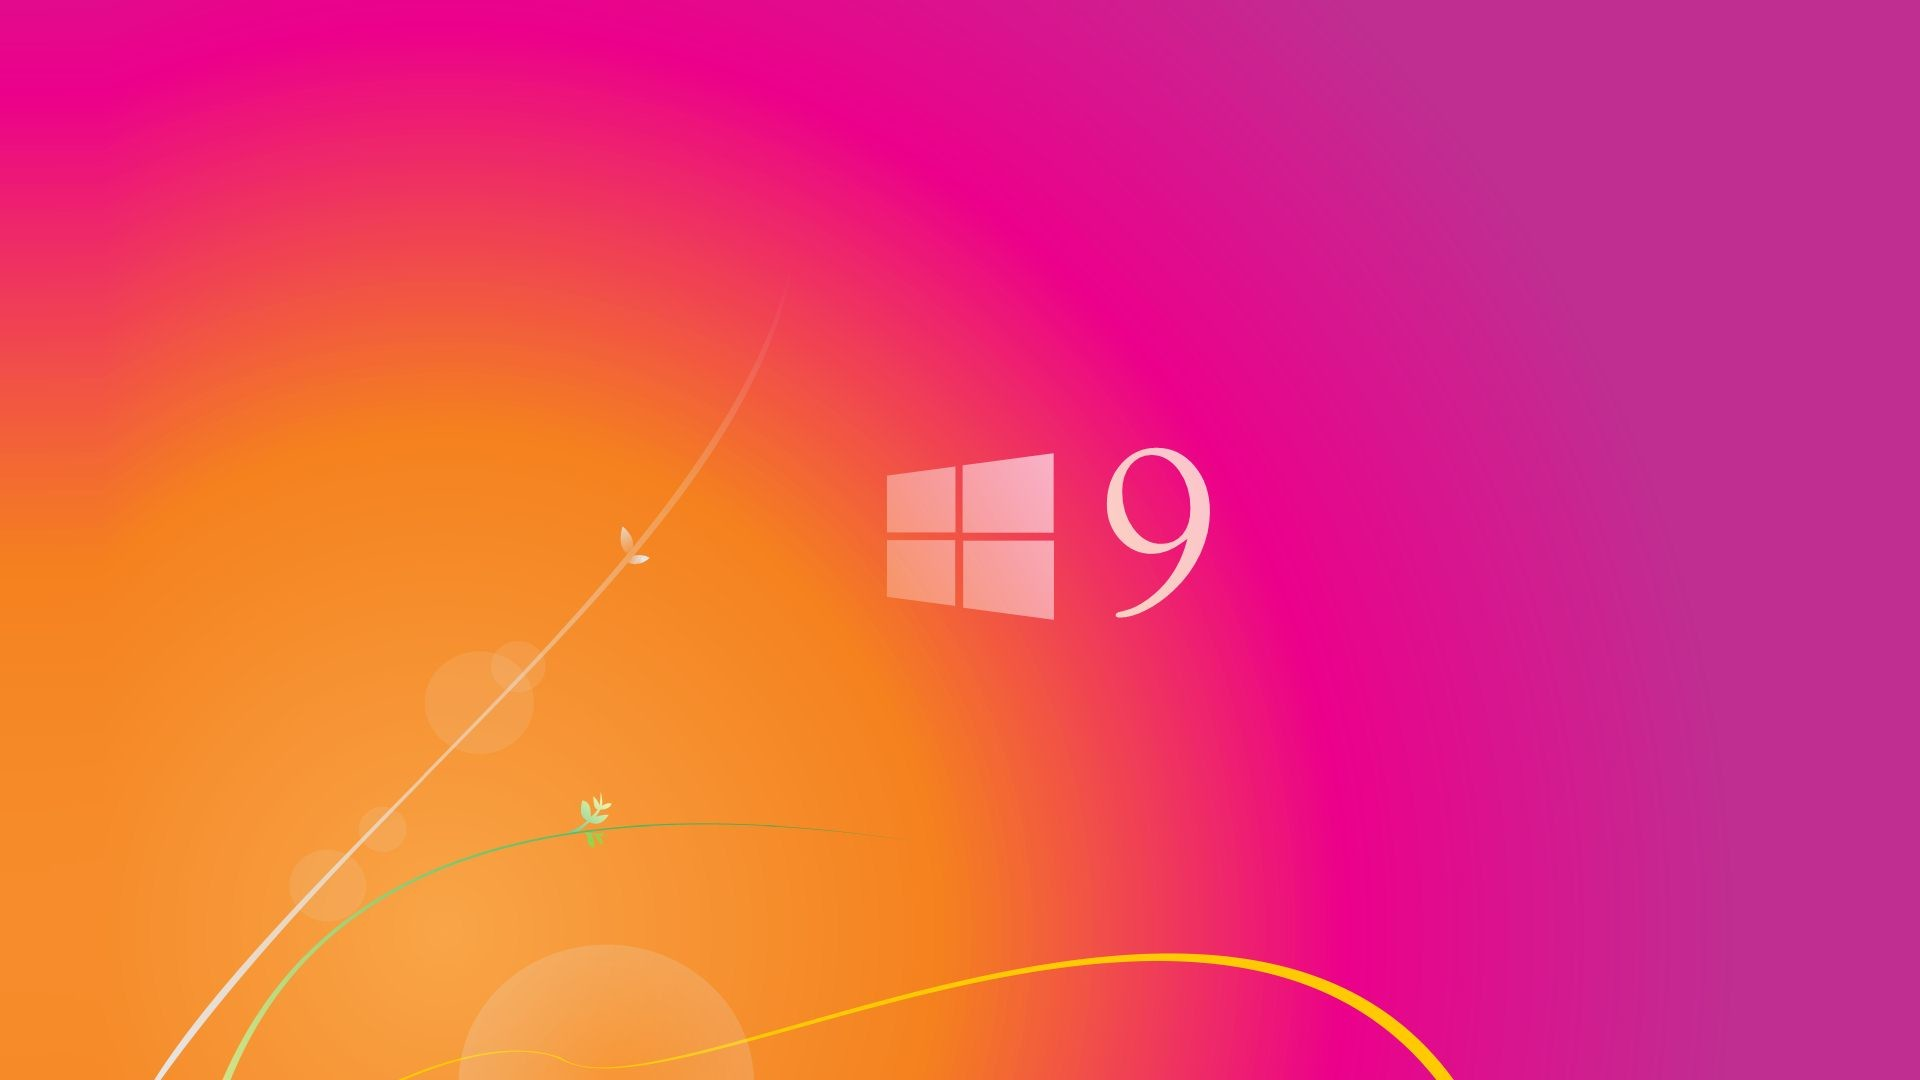 Windows 9 HD Wallpapers and Desktop Themes